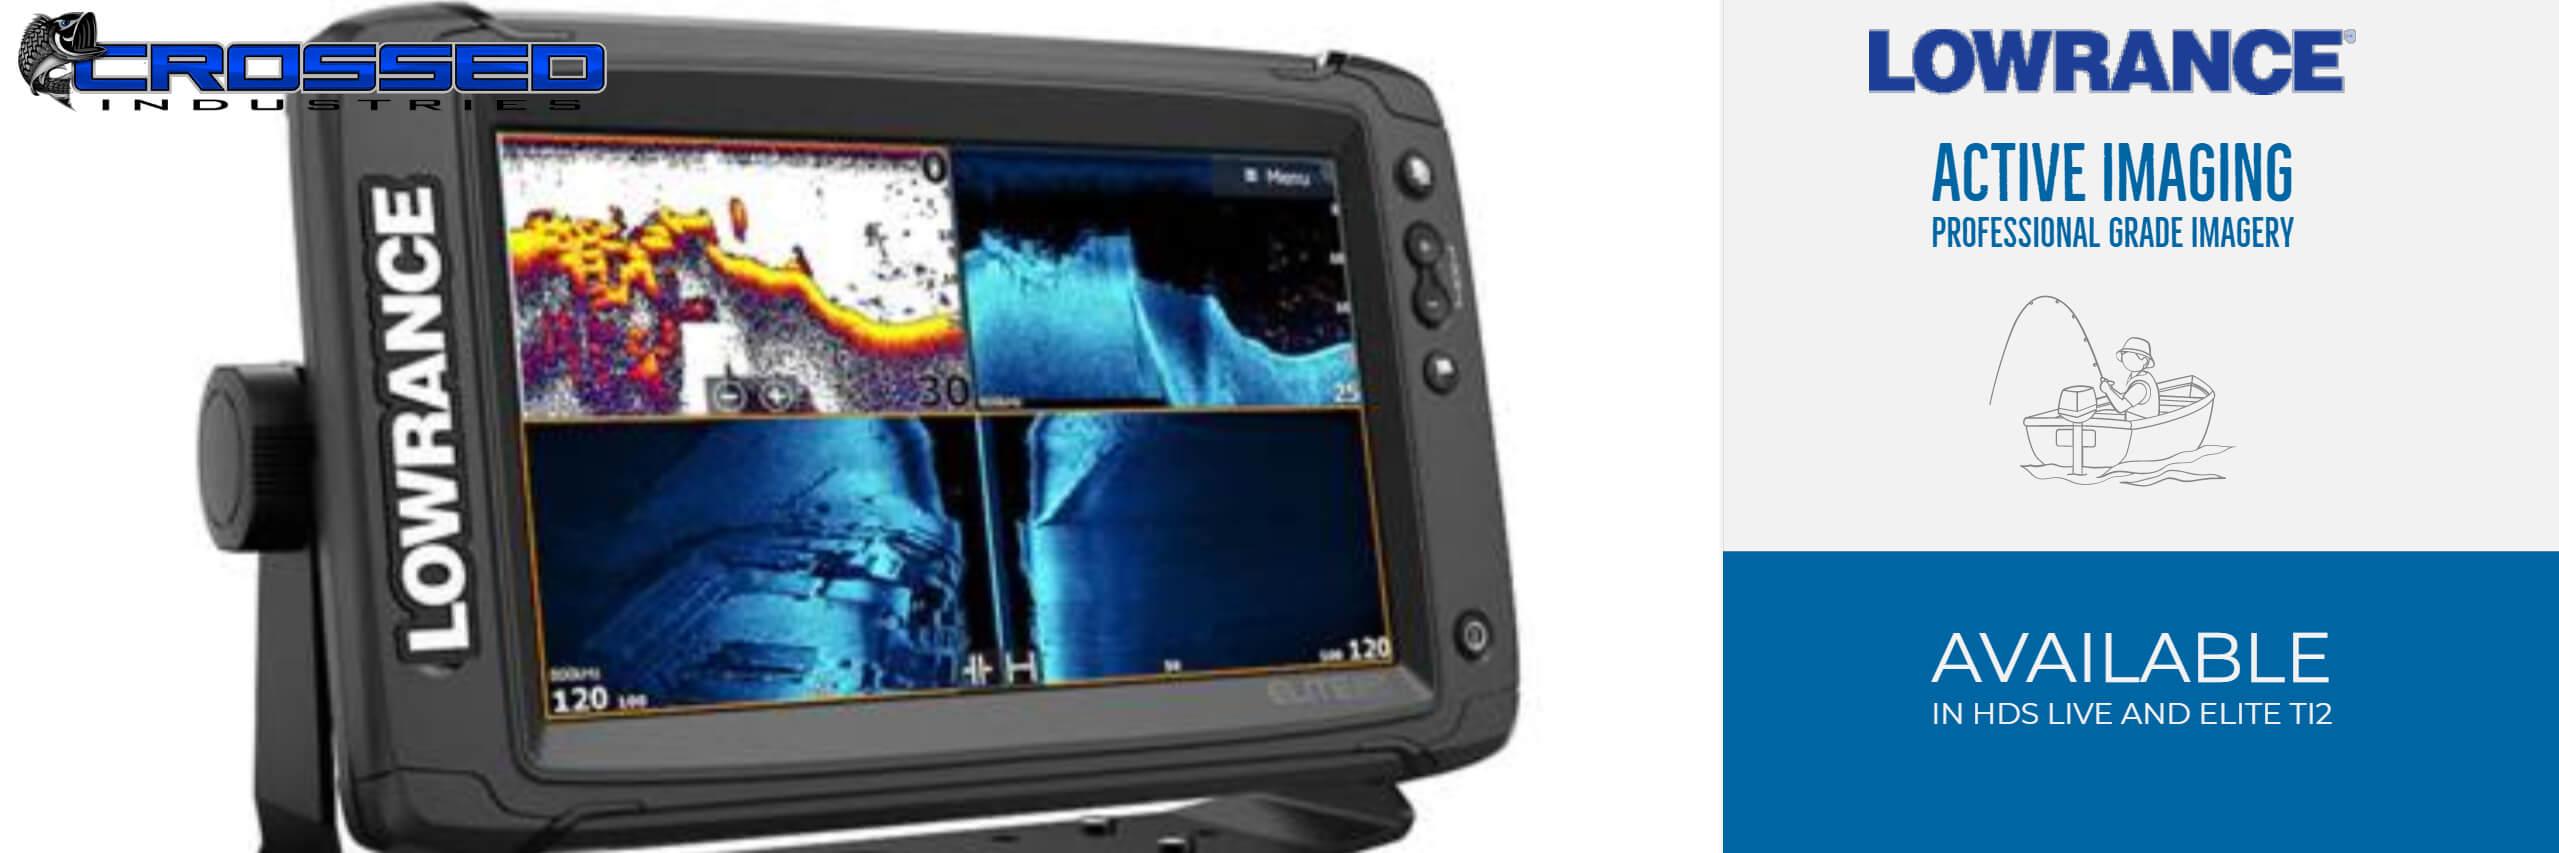 Lowrance Active Imaging Basics - Active Imaging Banner